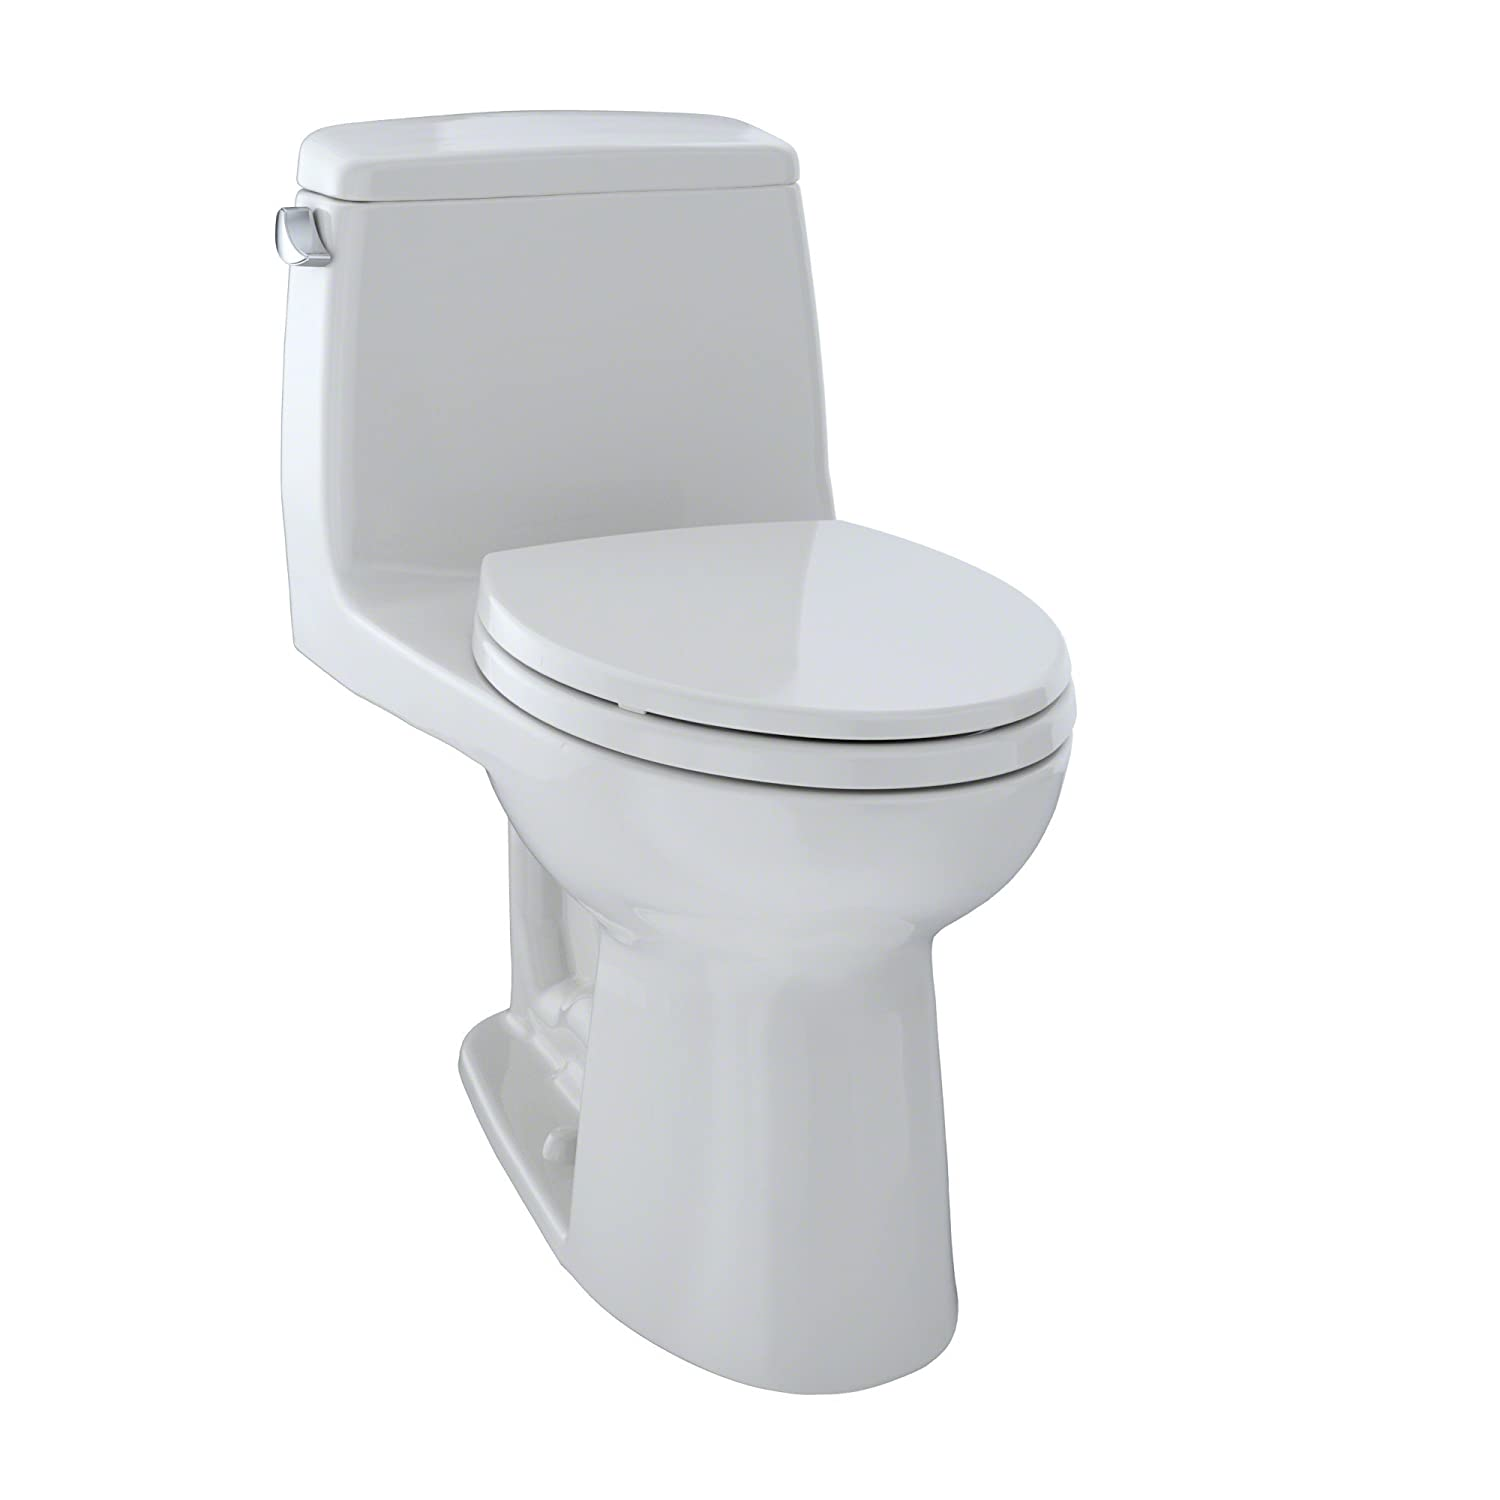 TOTO MS854114EL#11 Eco Ultramax ADA Elongated One Piece Toilet, Colonial White